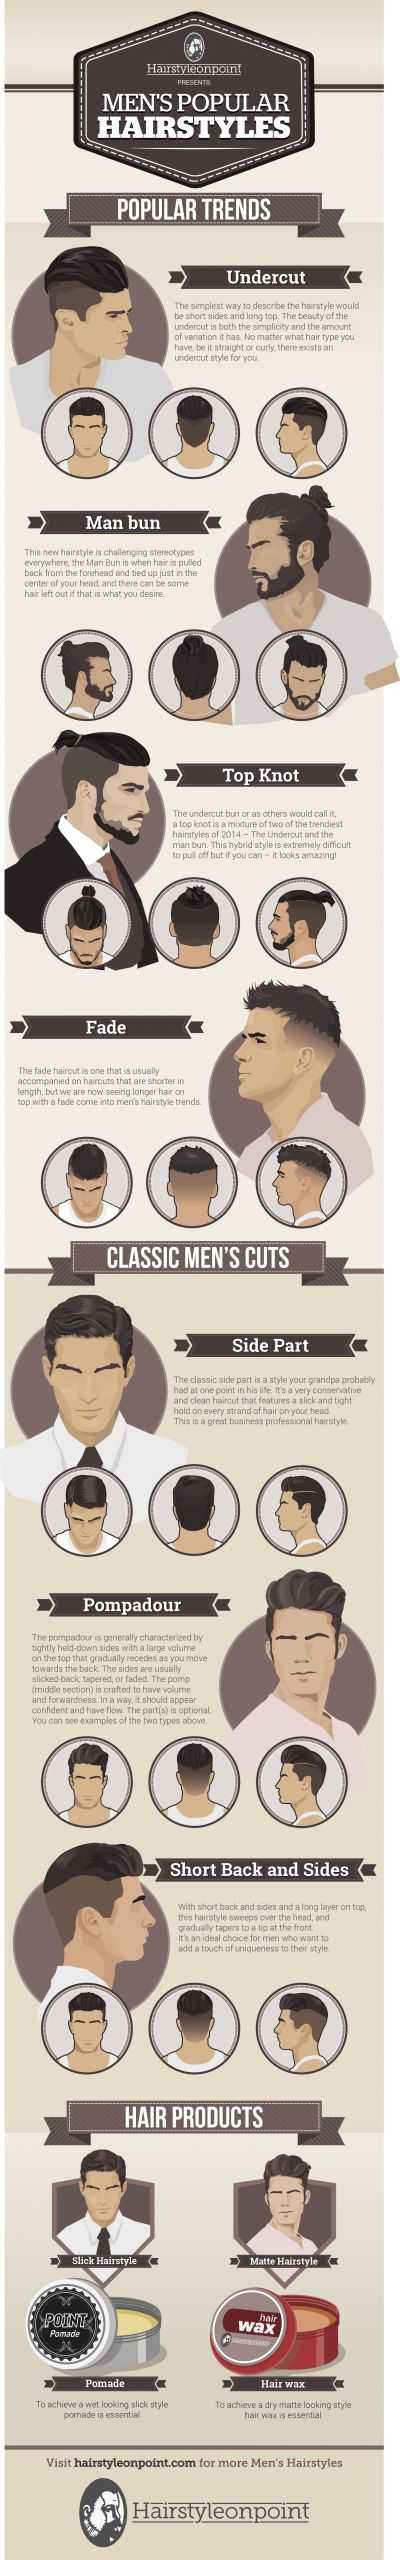 Here are the 6 most popular hairstyles for fashionable men... #got_ubams #lovetoread  check out my website www.w3429.myubam.com